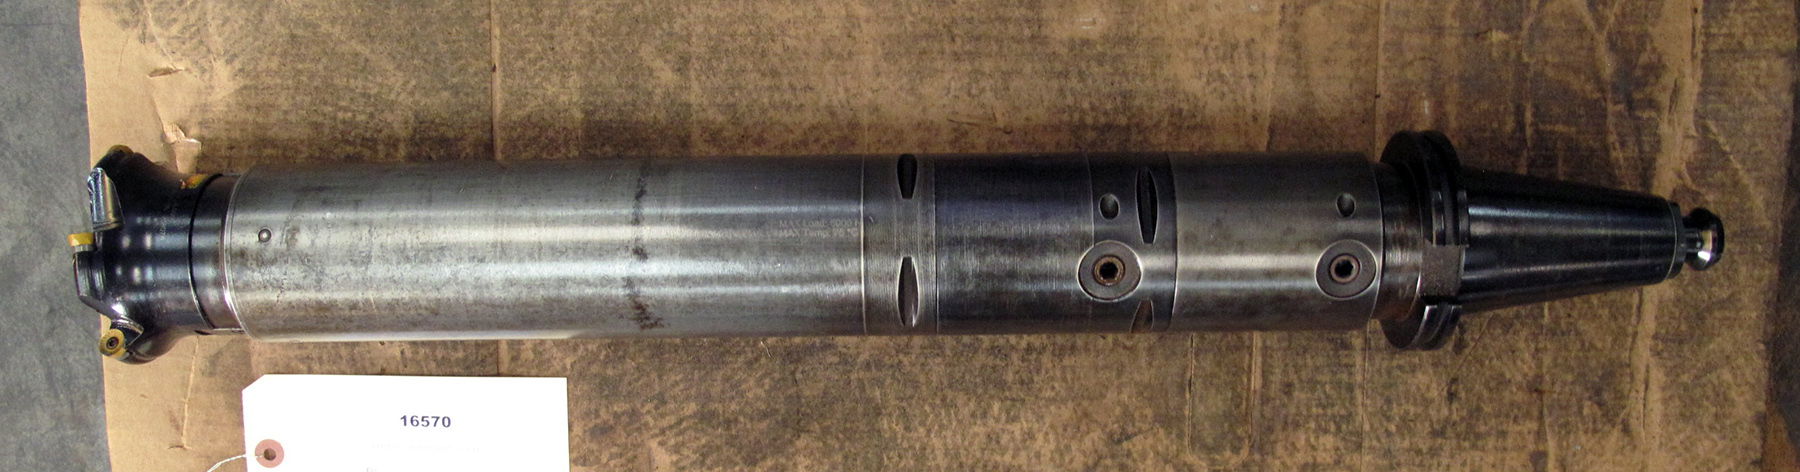 "USED, 3-1/2"" X 20"" EXTENDABLE FACE MILL HOLDER WITH 4"" FACE MILL, CAT 50"